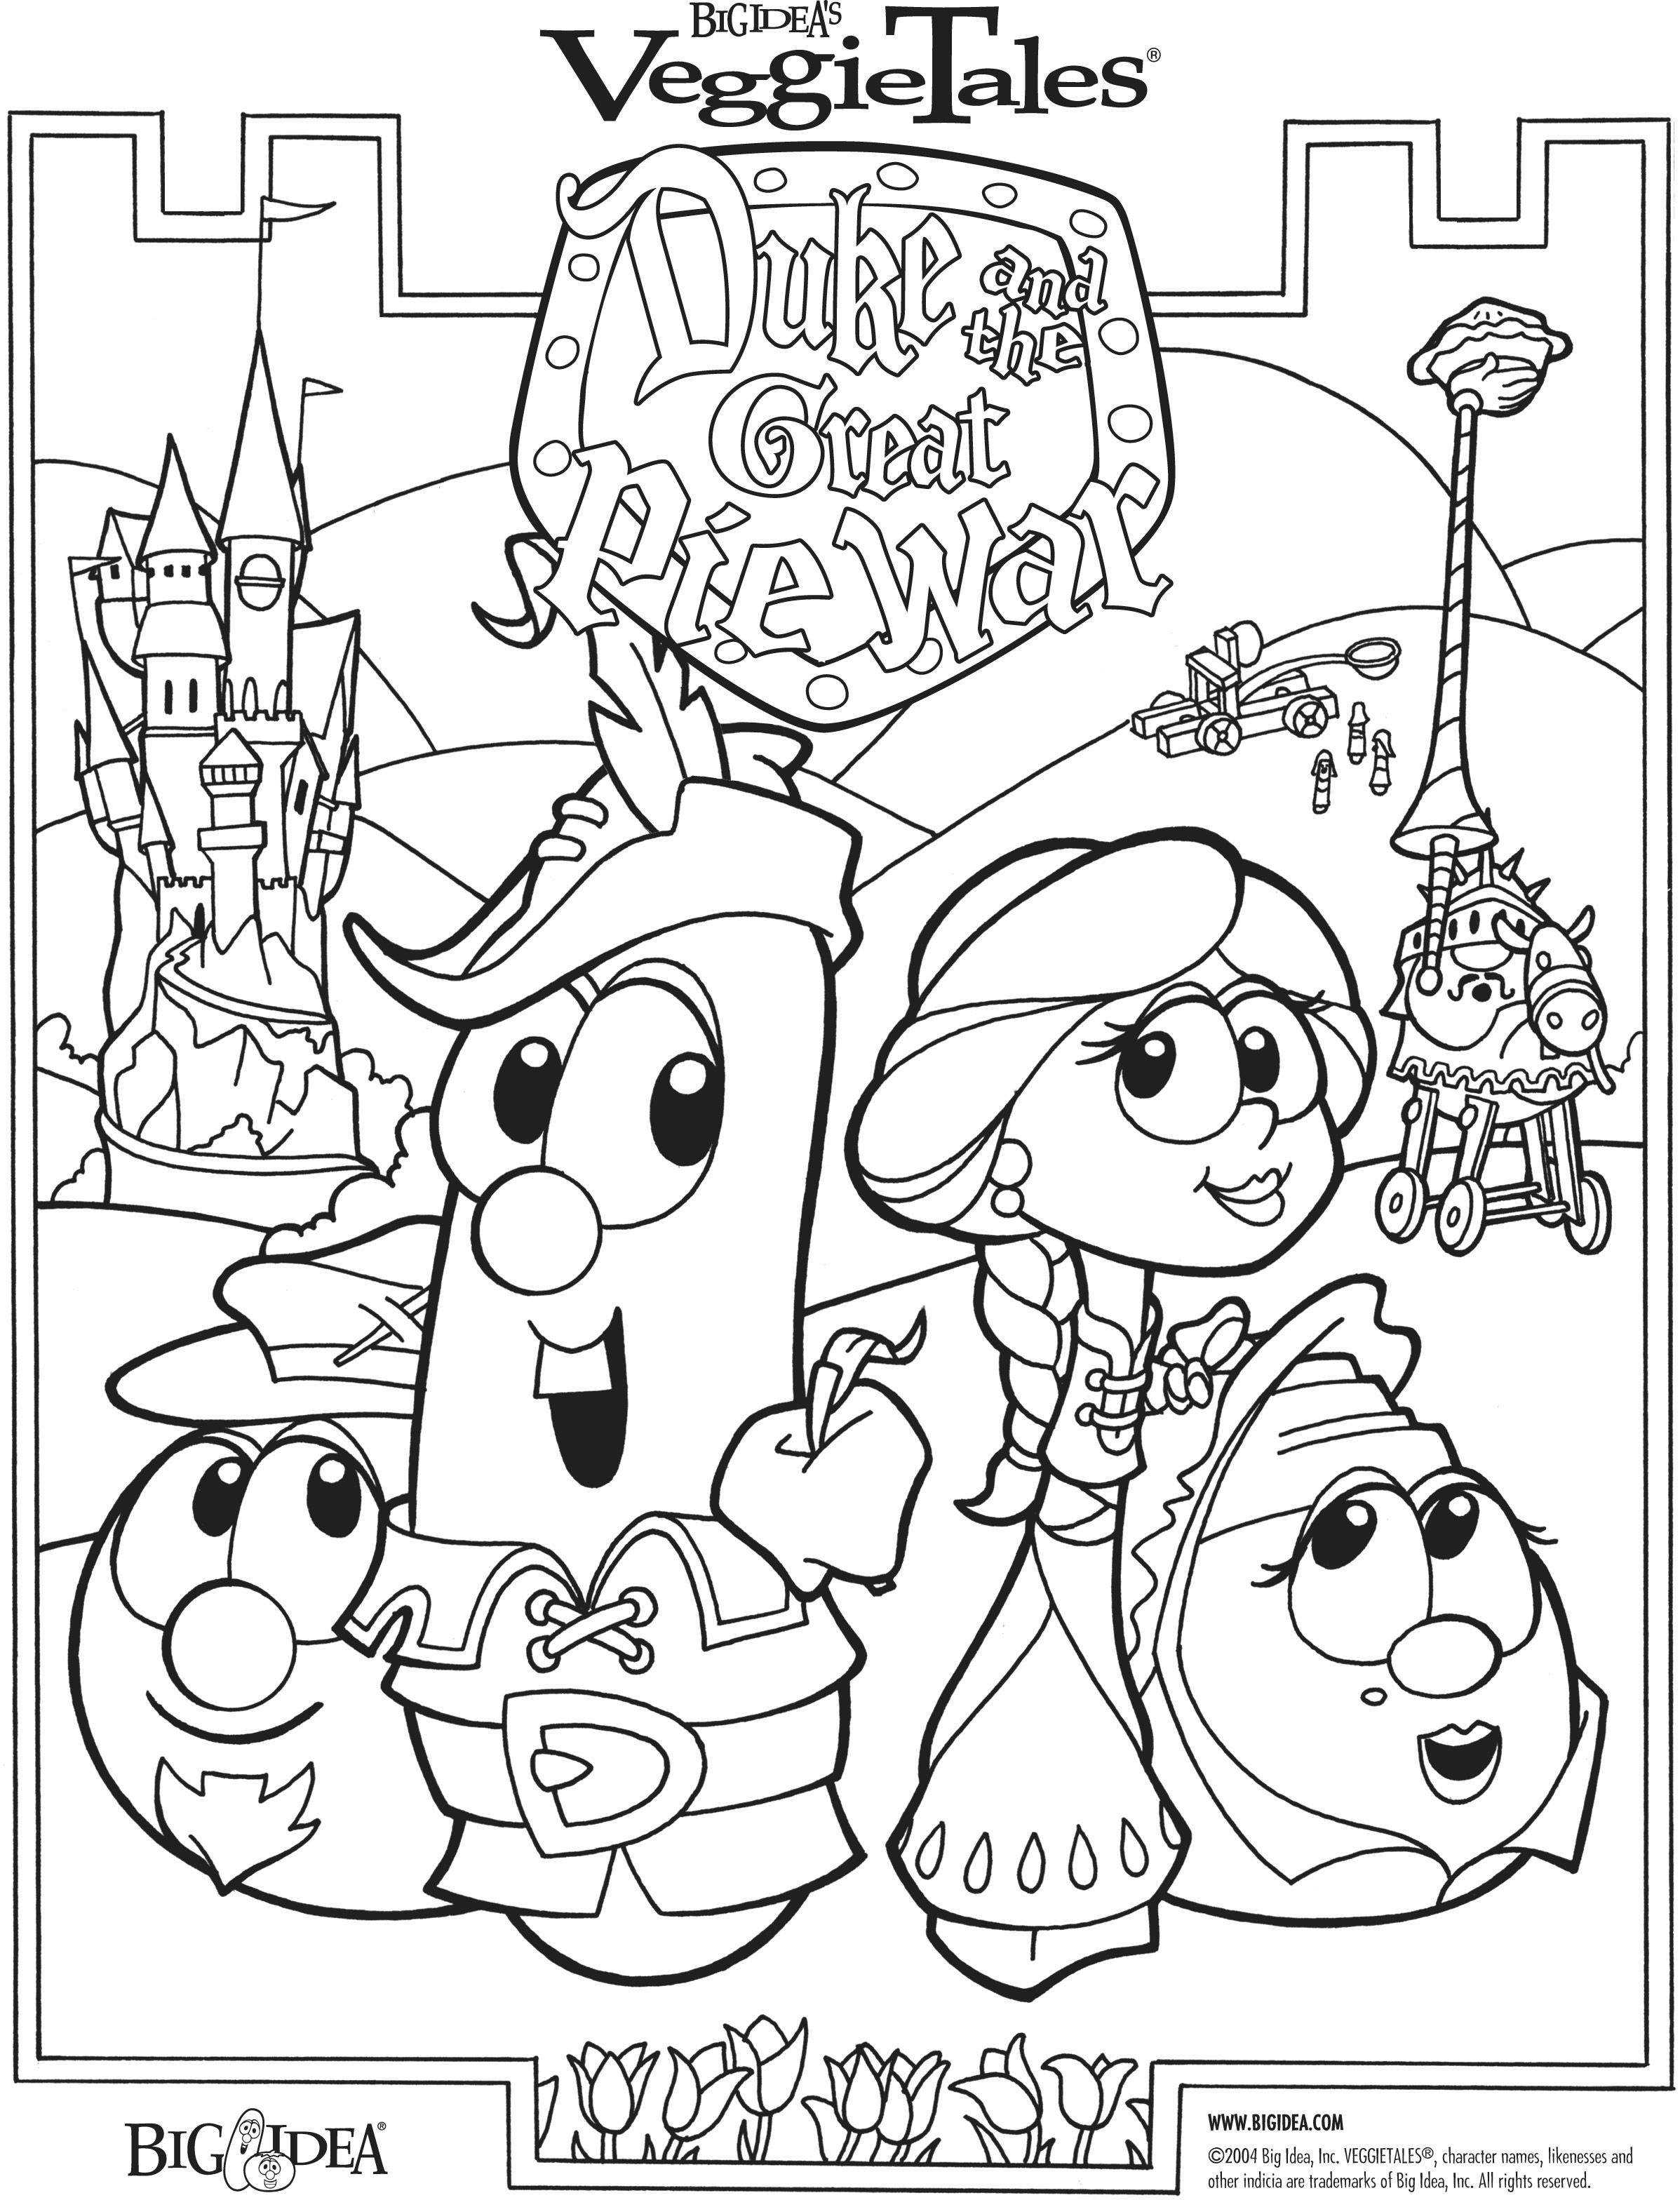 Battle Pirates Cheat Engine 61 Download Jep Merr Banesa Children Of Coloring Pages Coloring Pages Inspirational Veggie Tales